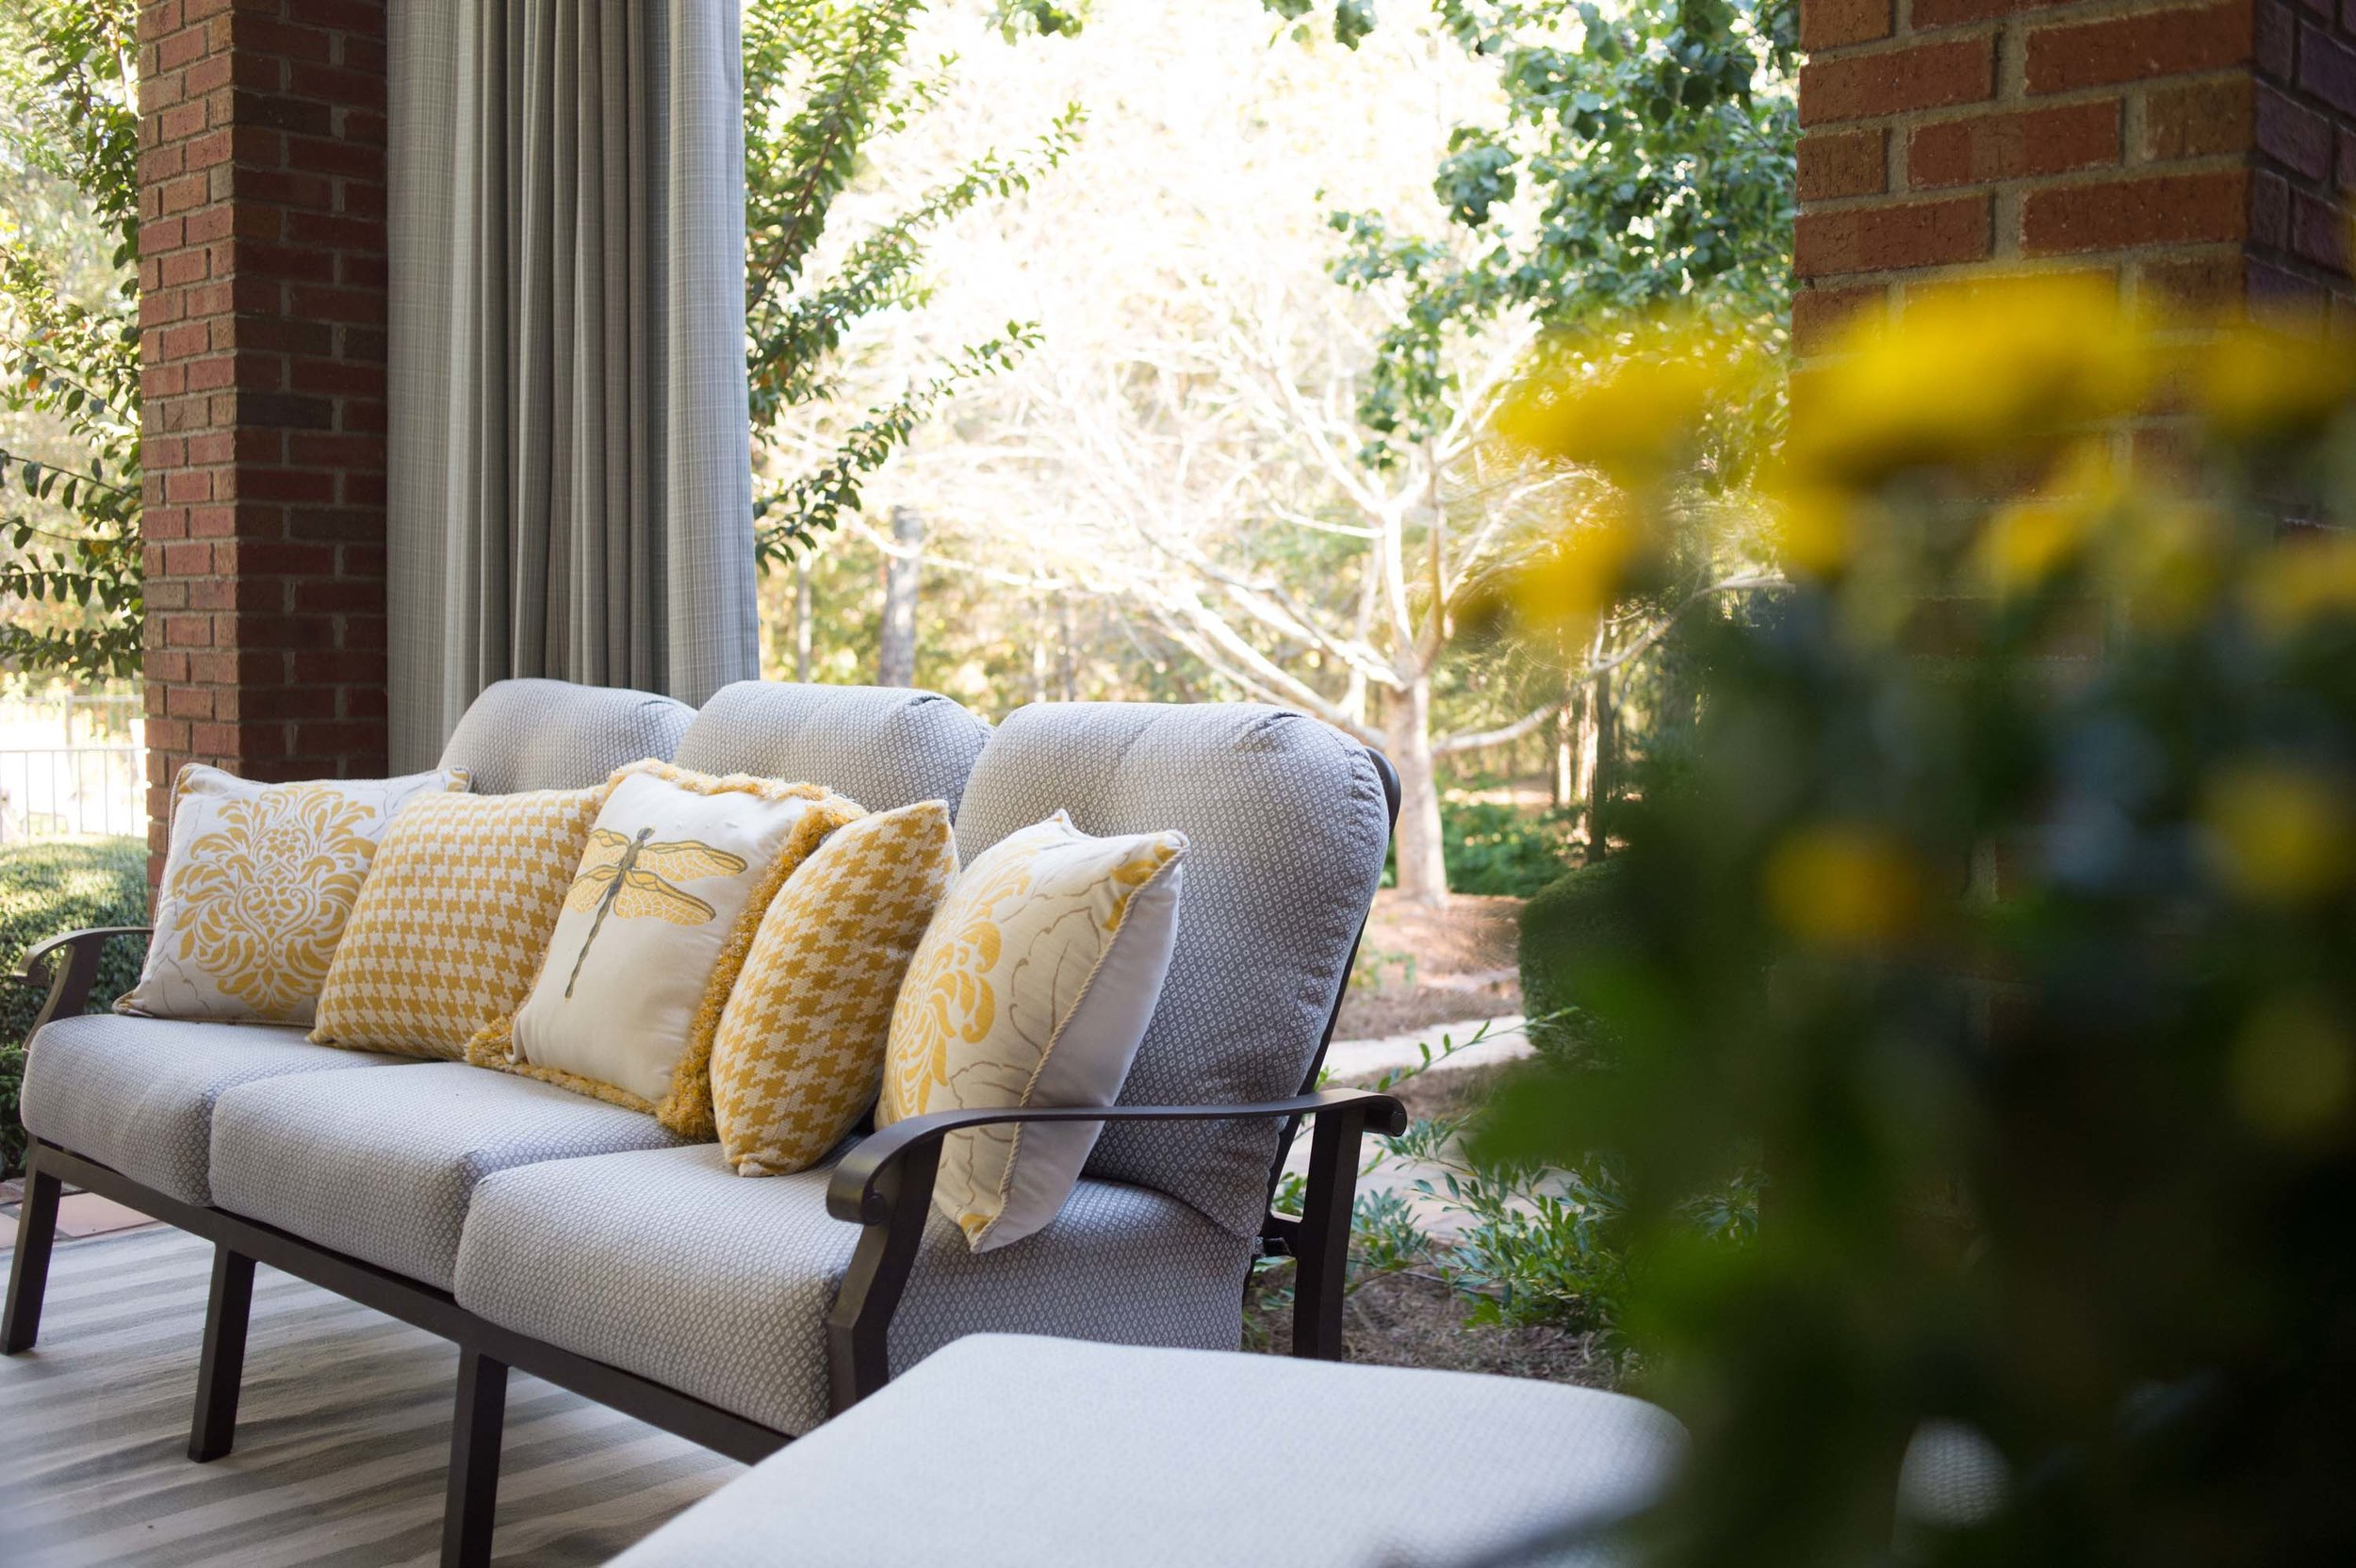 Outdoor patio with sofa and modern style center table